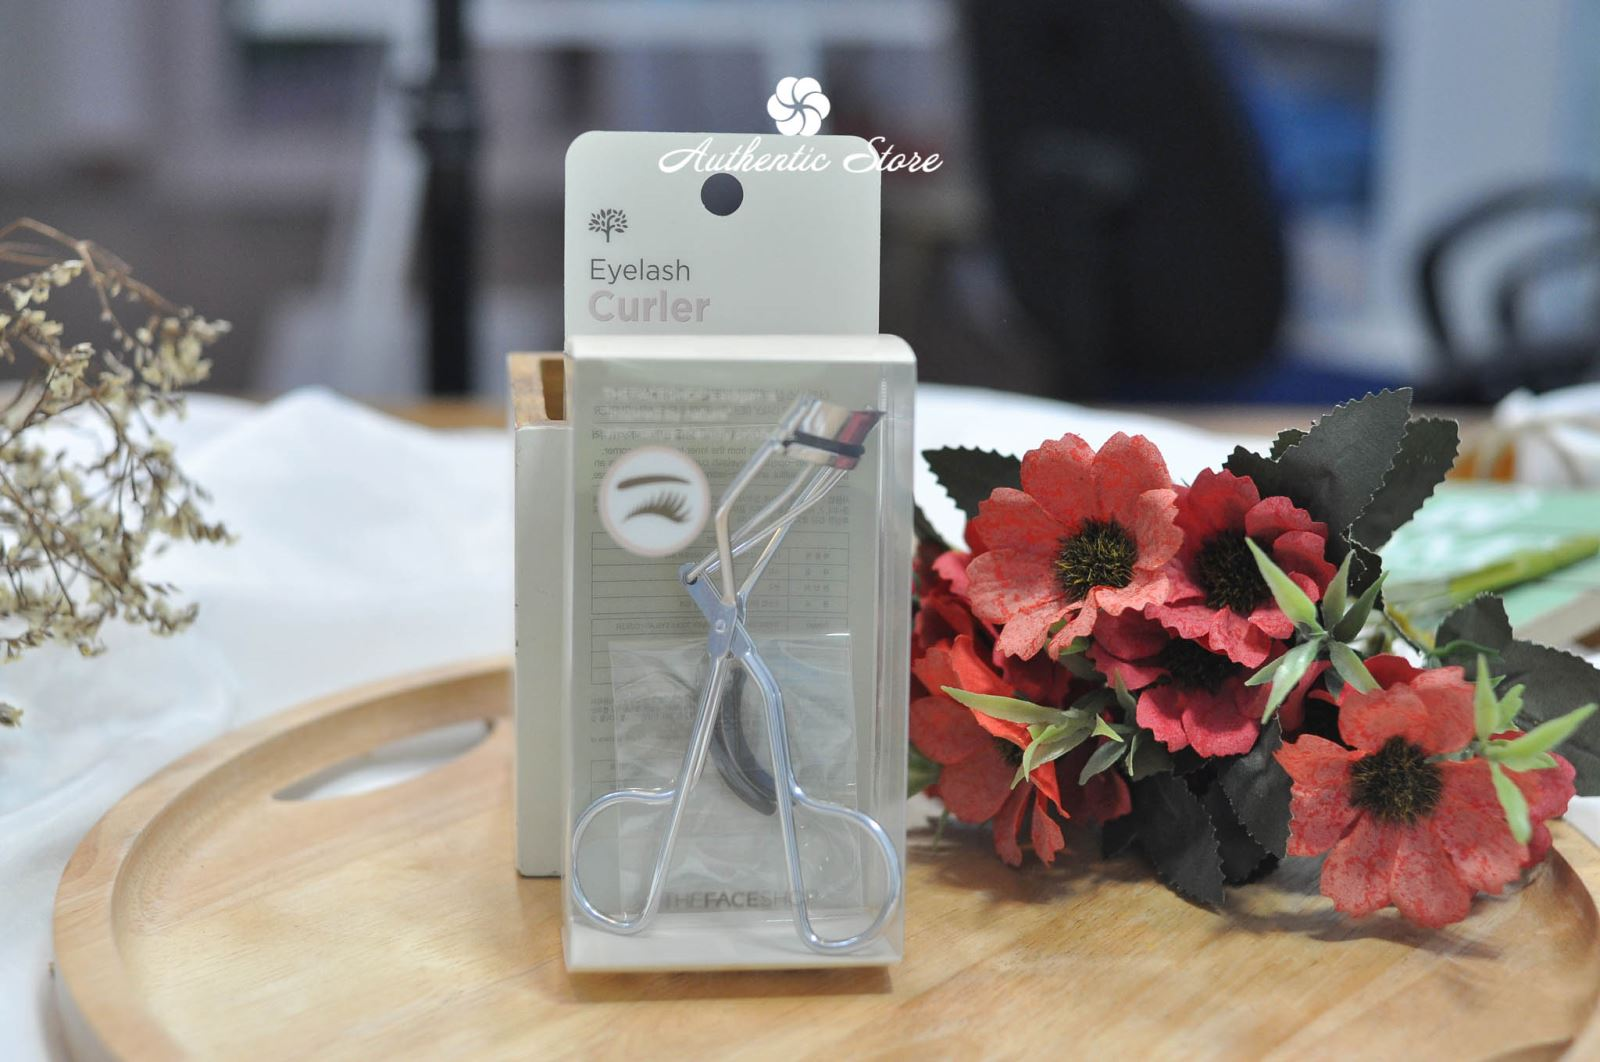 Kẹp mi The Face Shop Eyelash curler